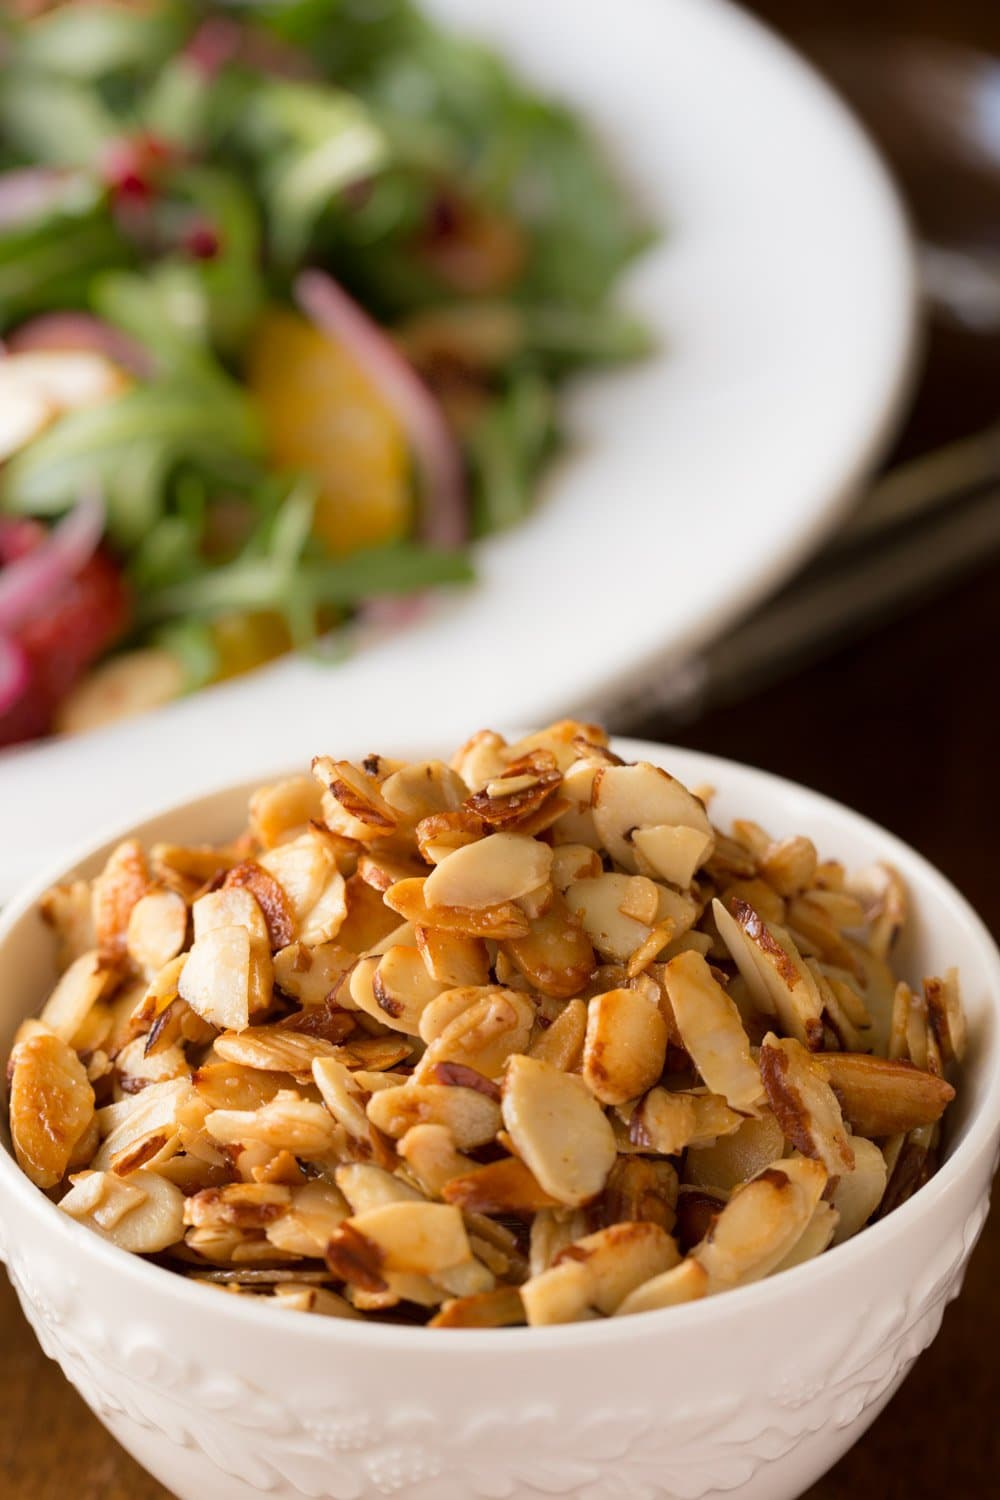 Vertical closeup photo of Honey Glazed Almonds in a small white serving bowl with a salad in the background.